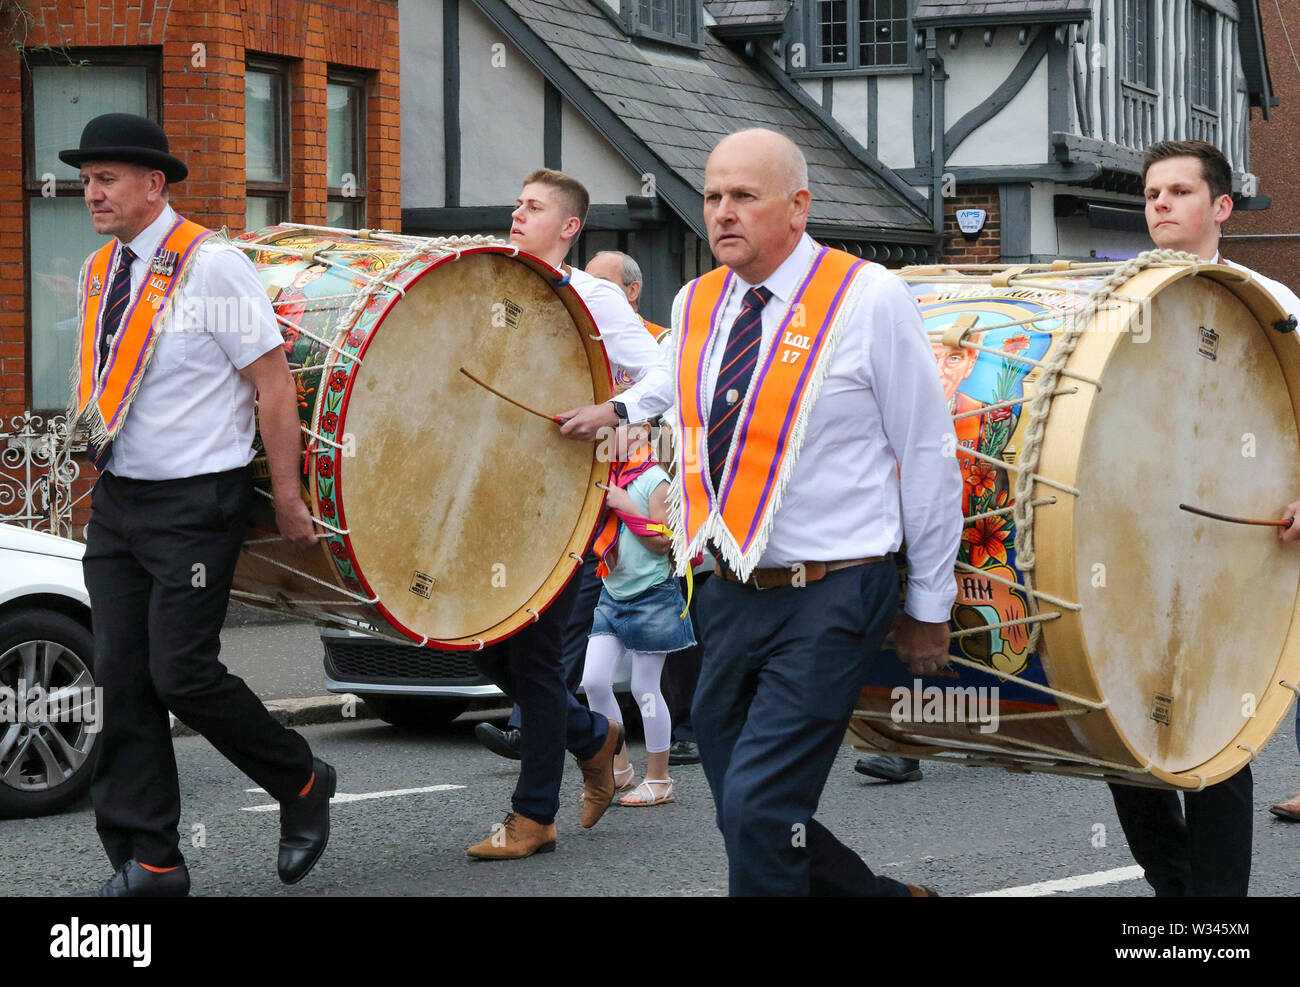 Lurgan, County Armagh, Northern Ireland.12 July 2019. The Twelfth of July is marked by Orange Order parades across Northern Ireland. Lurgan District left their headquarters at Brownlow House before parading up the town to the war memorial and then headed to the town of Tandragee for the main County Armagh demonstration. The parades across Northern Ireland mark the victory of William of Orange over James at the Battle of the Boyne in 1690. Lambeg drums being played. .Credit: CAZIMB/Alamy Live News. - Stock Image